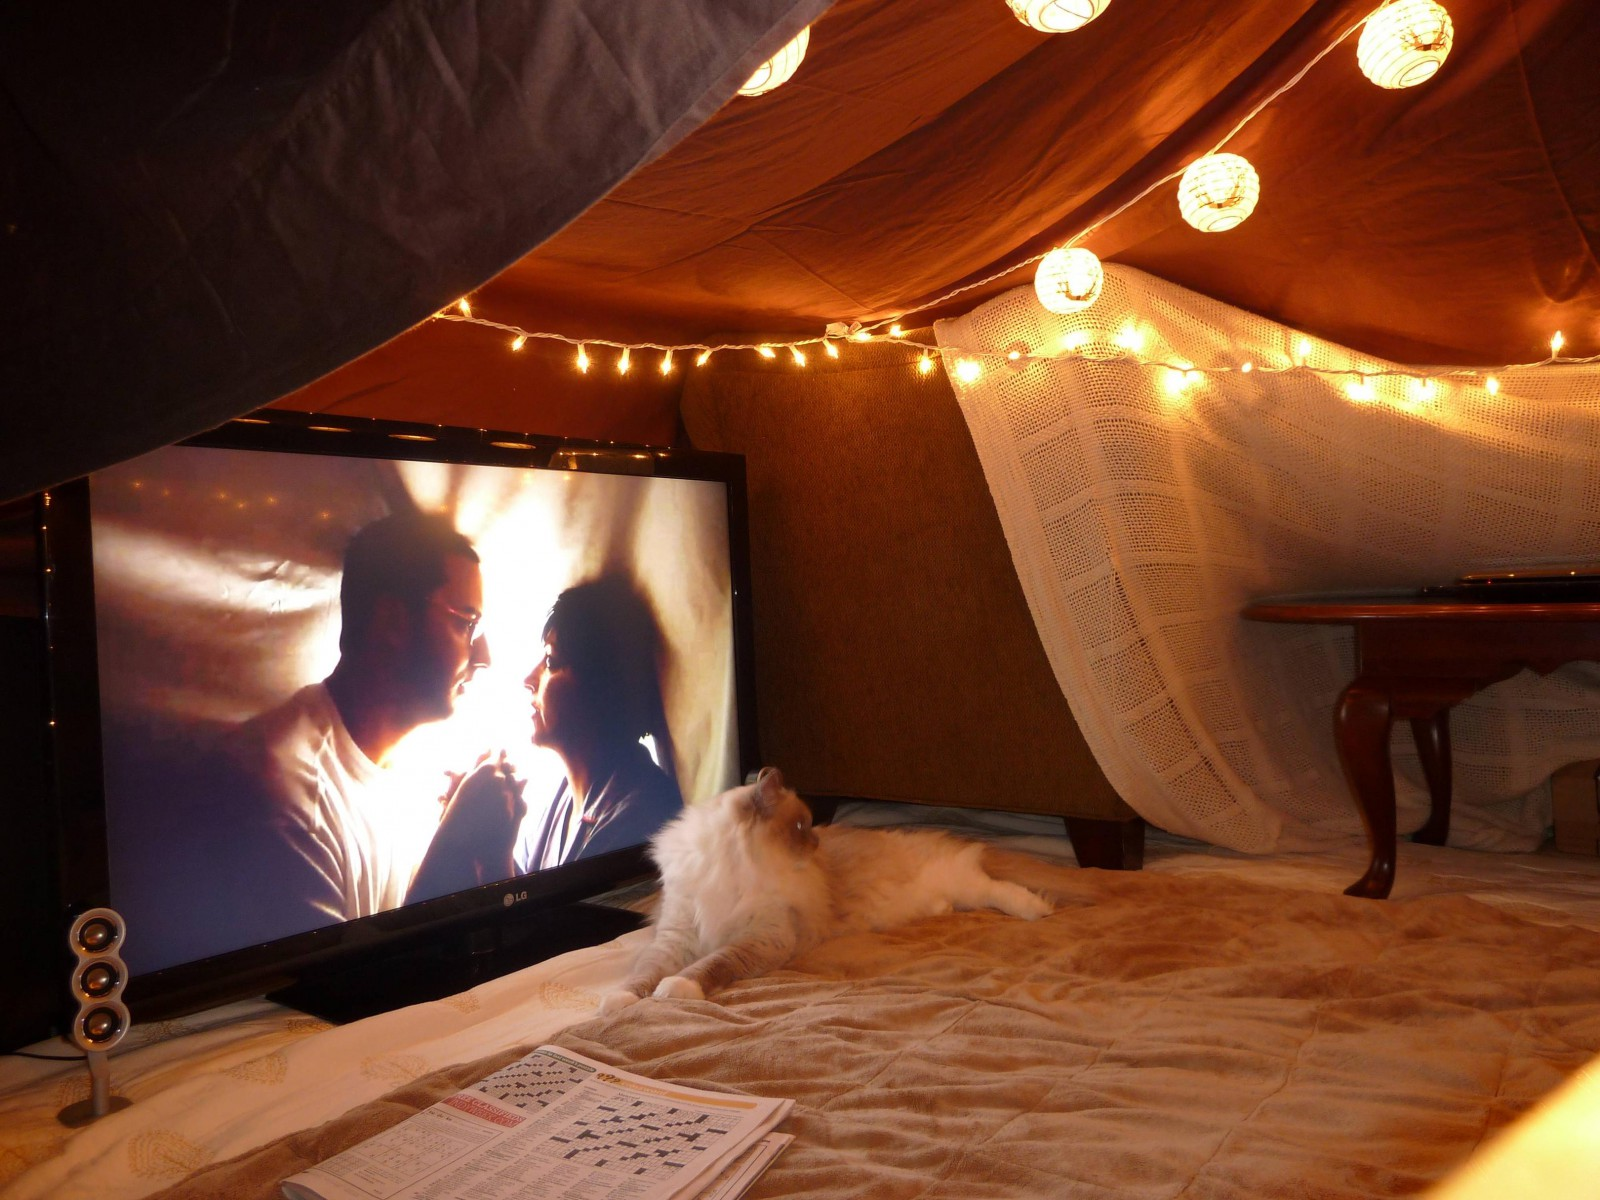 Attractive Blankets And Lights. Blanket Fort